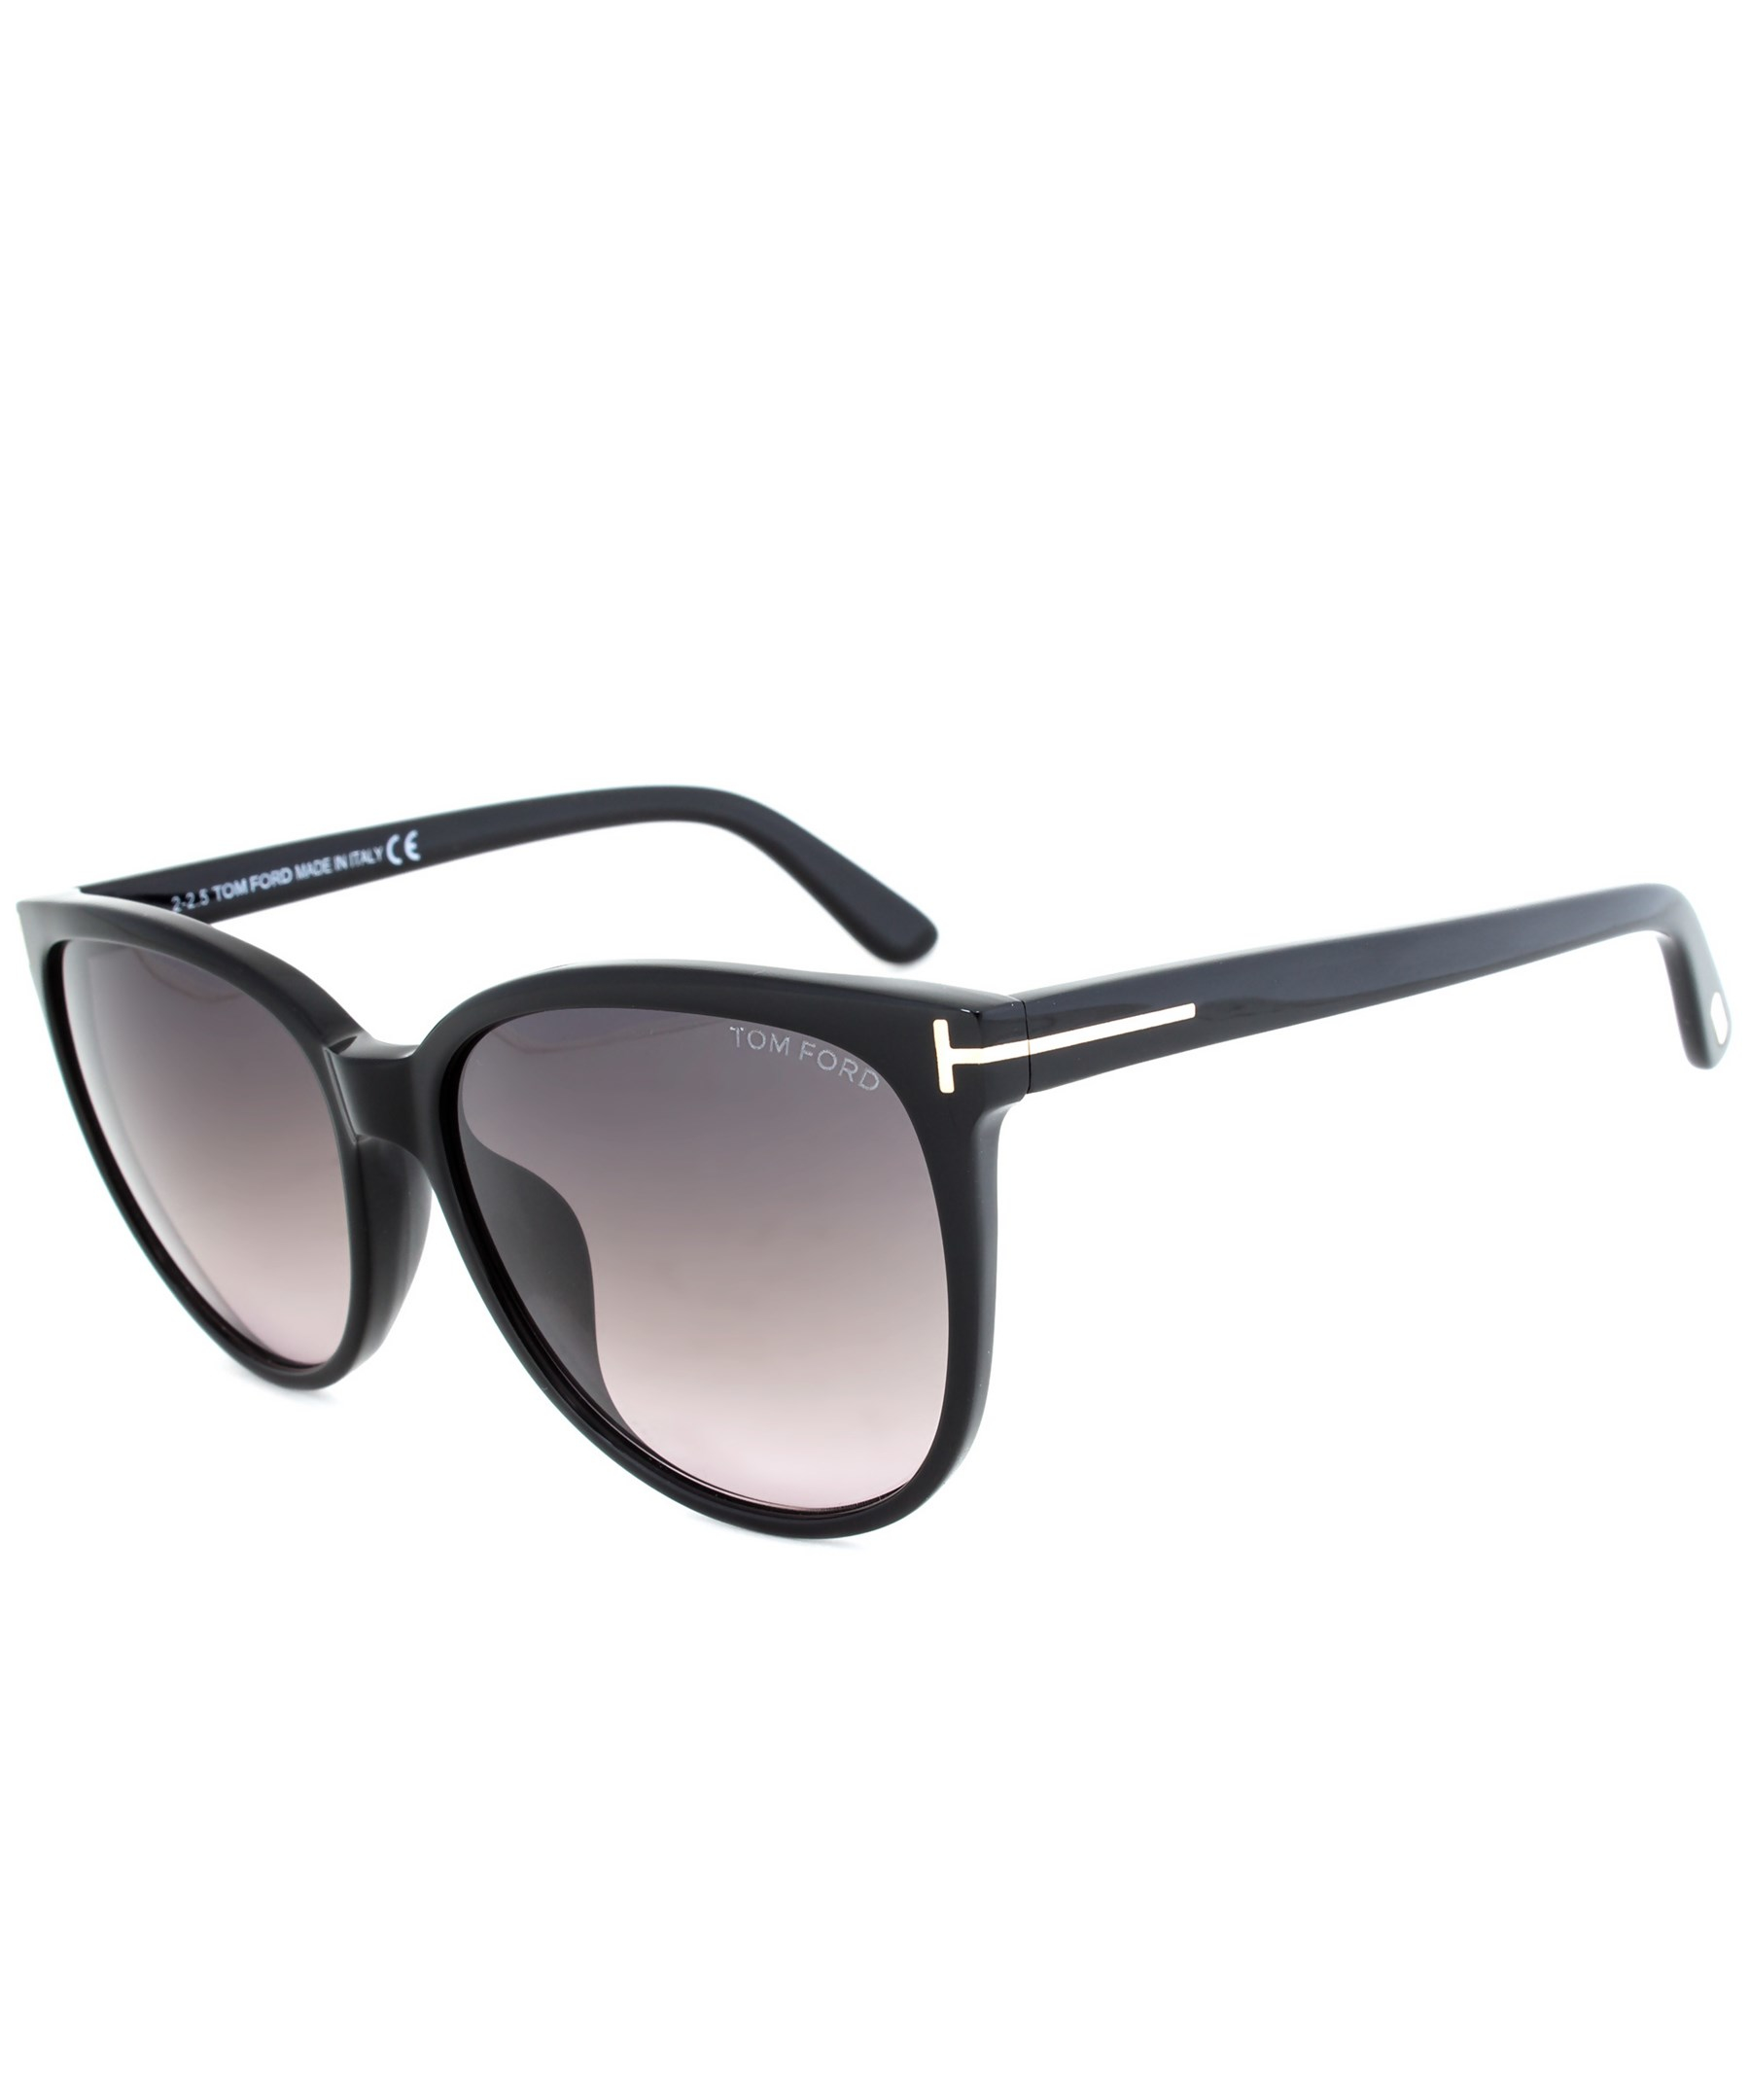 6674a579db4 Lyst - Tom Ford Asian Fit Oversized Women s Butterfly Sunglasses ...